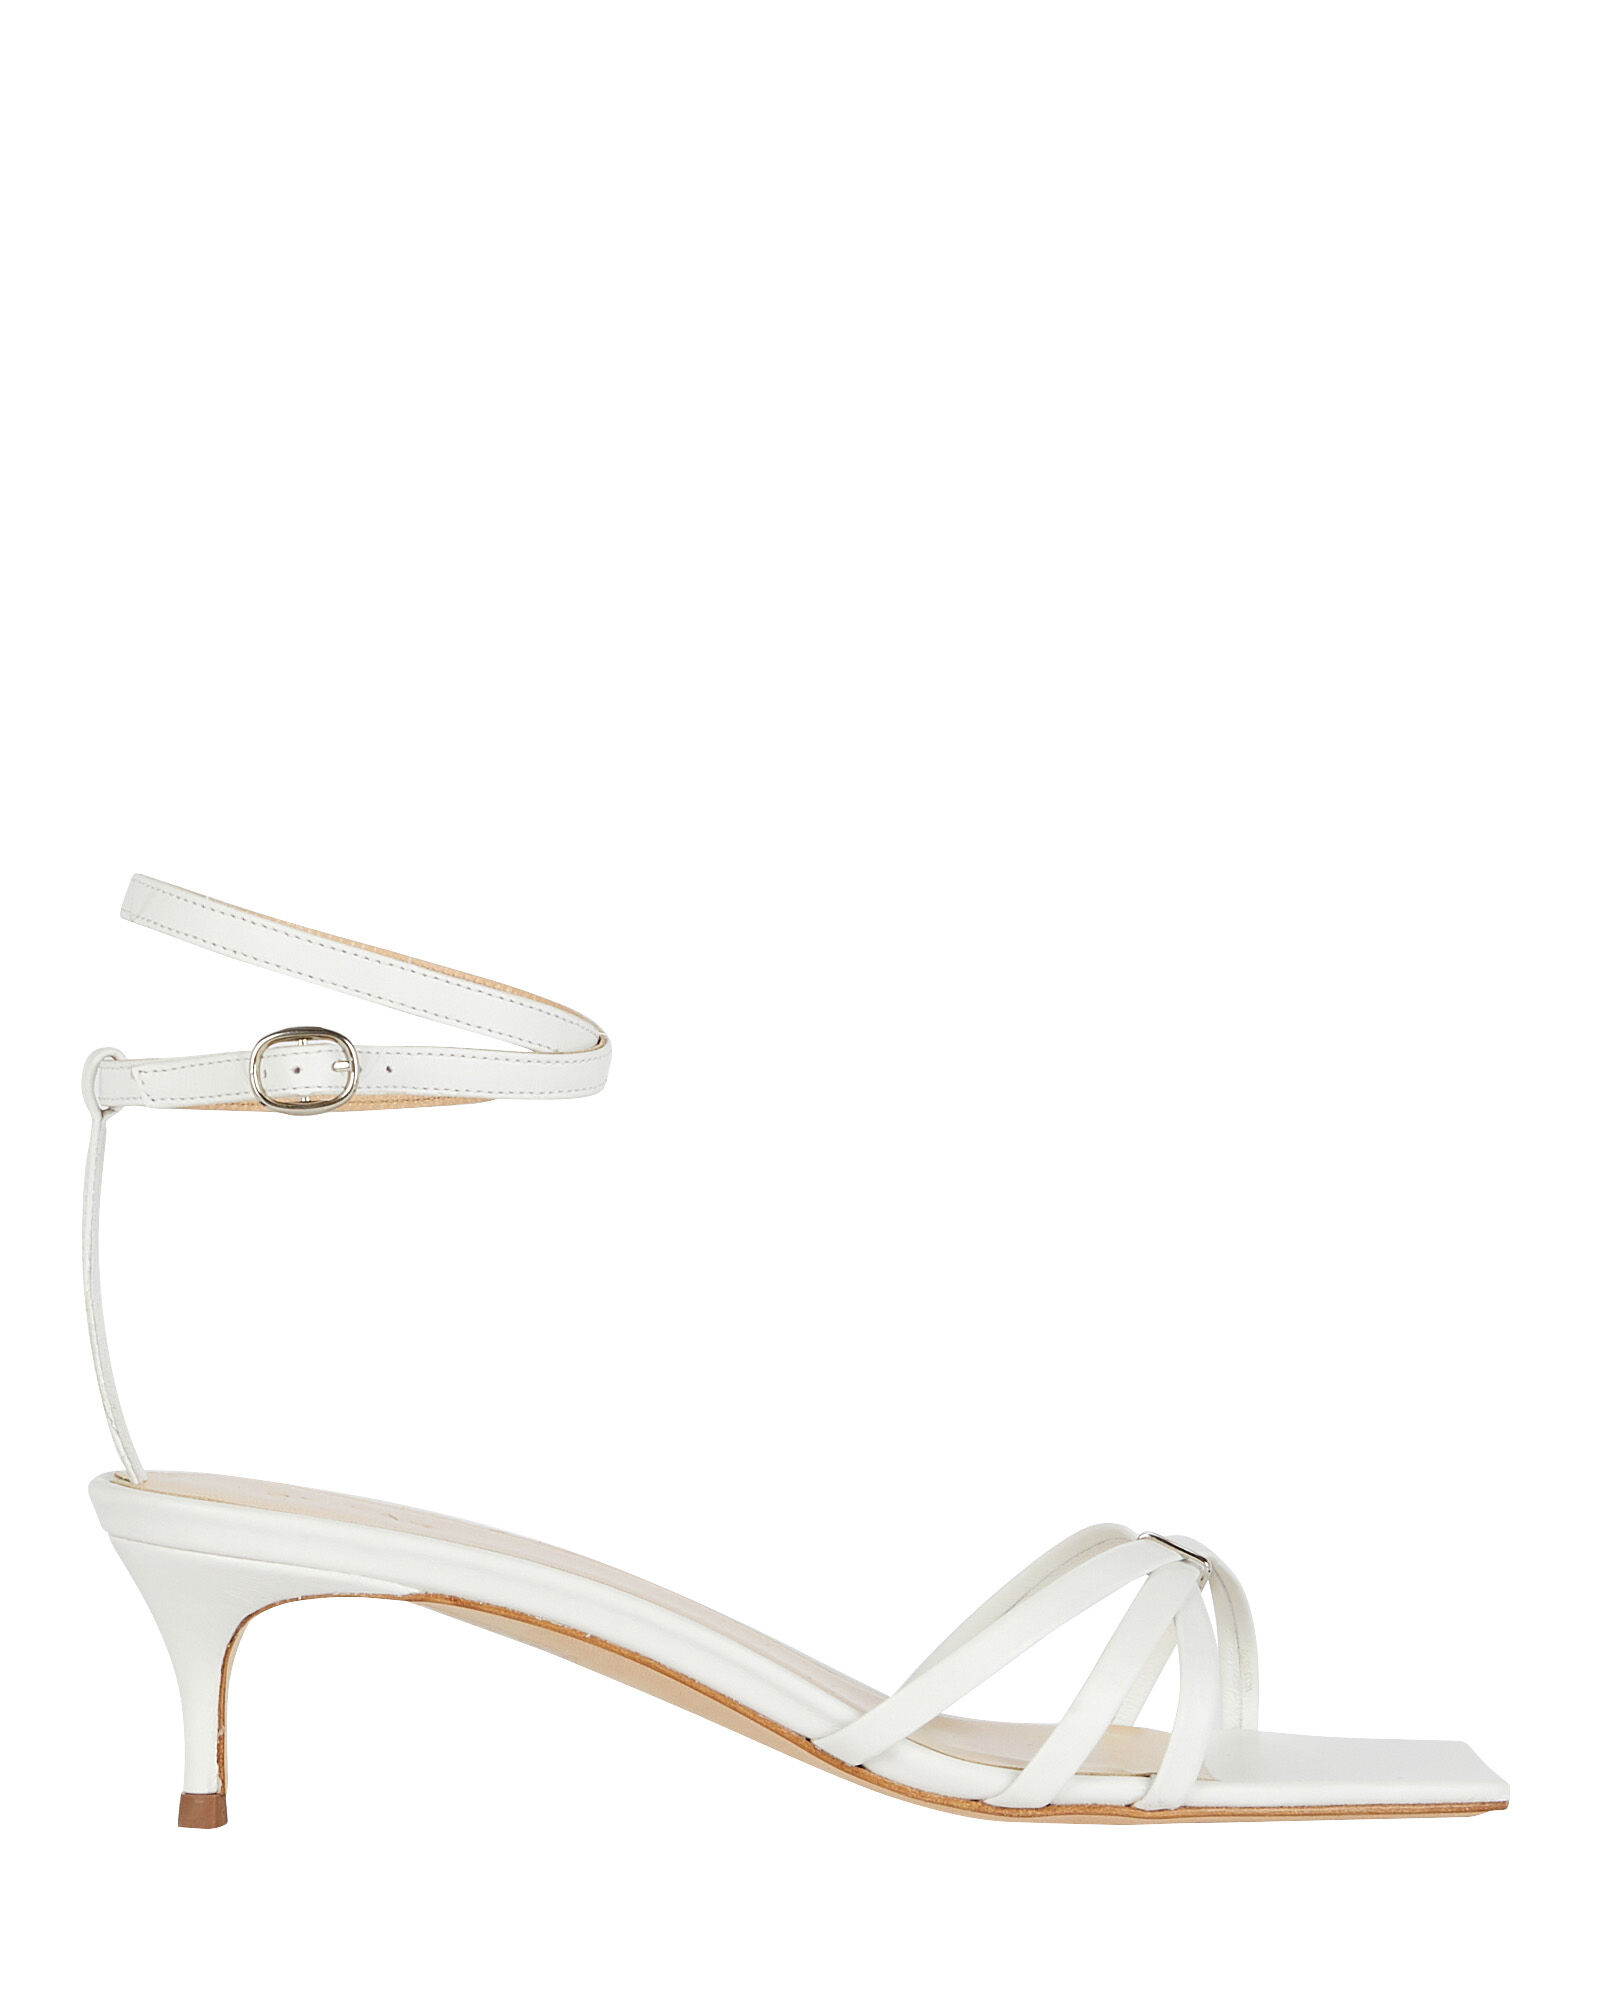 BY FAR Kaia Leather Wrap Sandals